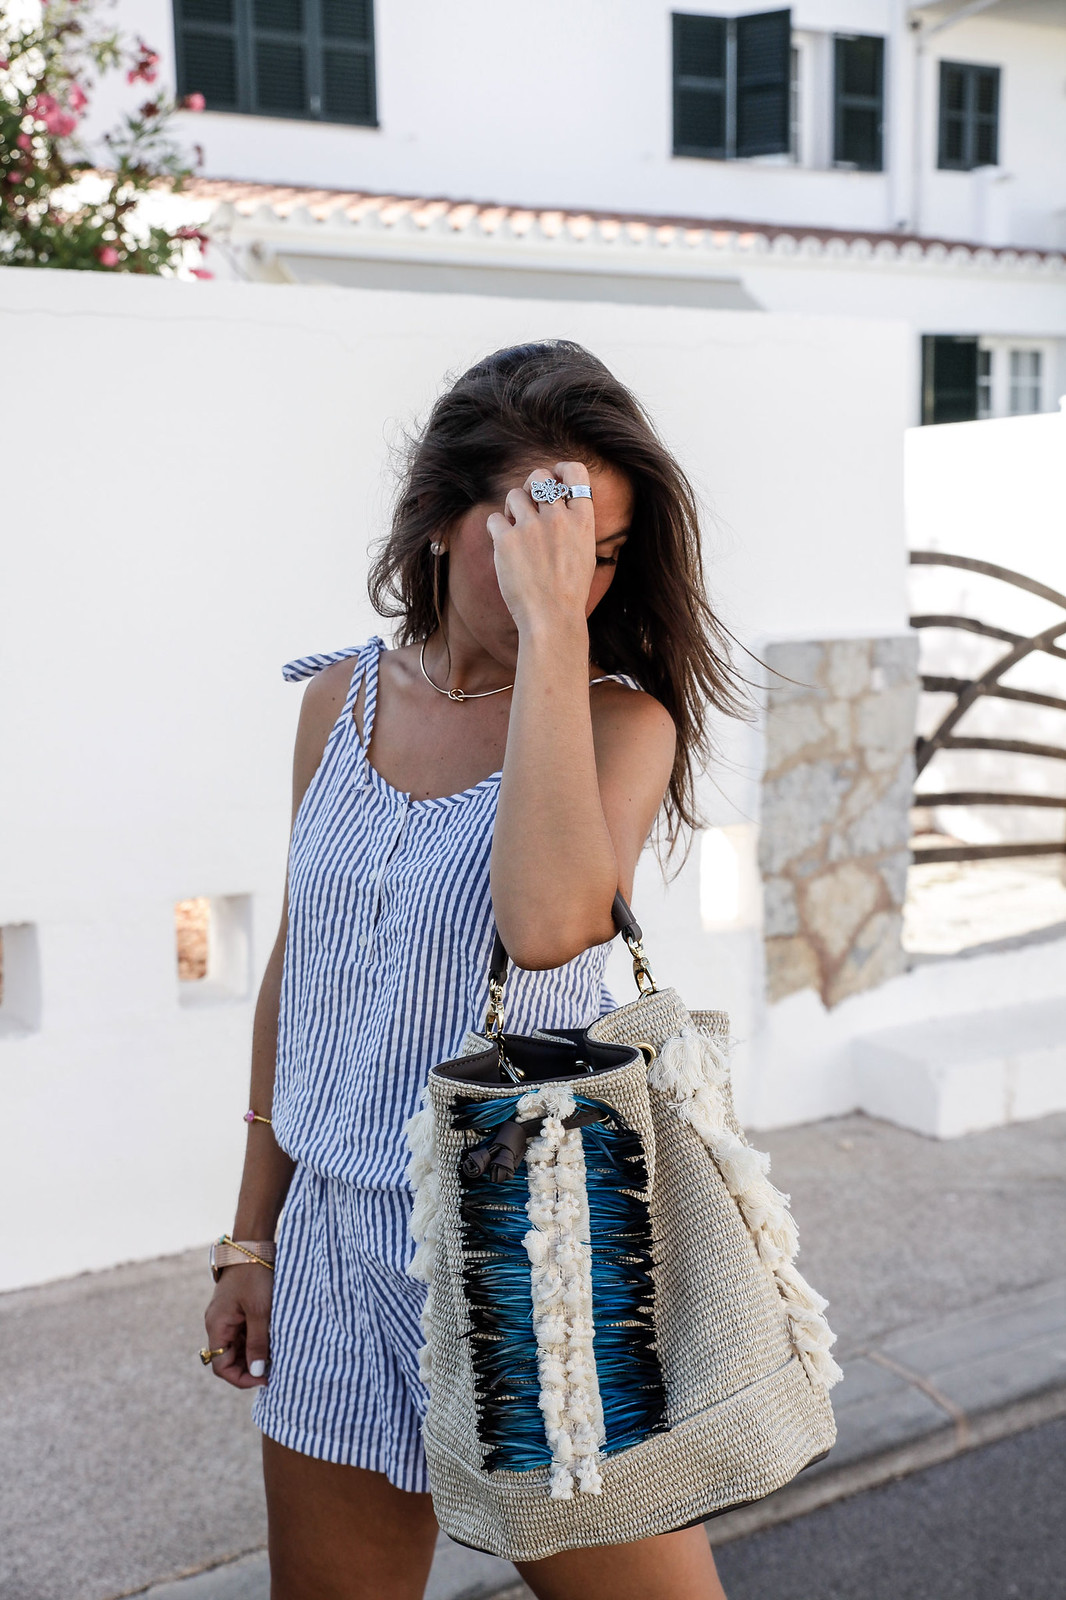 012_Mono_rayas_marineras_casual_outfit_theguestgirl_bolso_boho_via_email_pieces_style_the_guest_girl_influencer_menorca_minorca_barcelona_spain_fashion_blogger